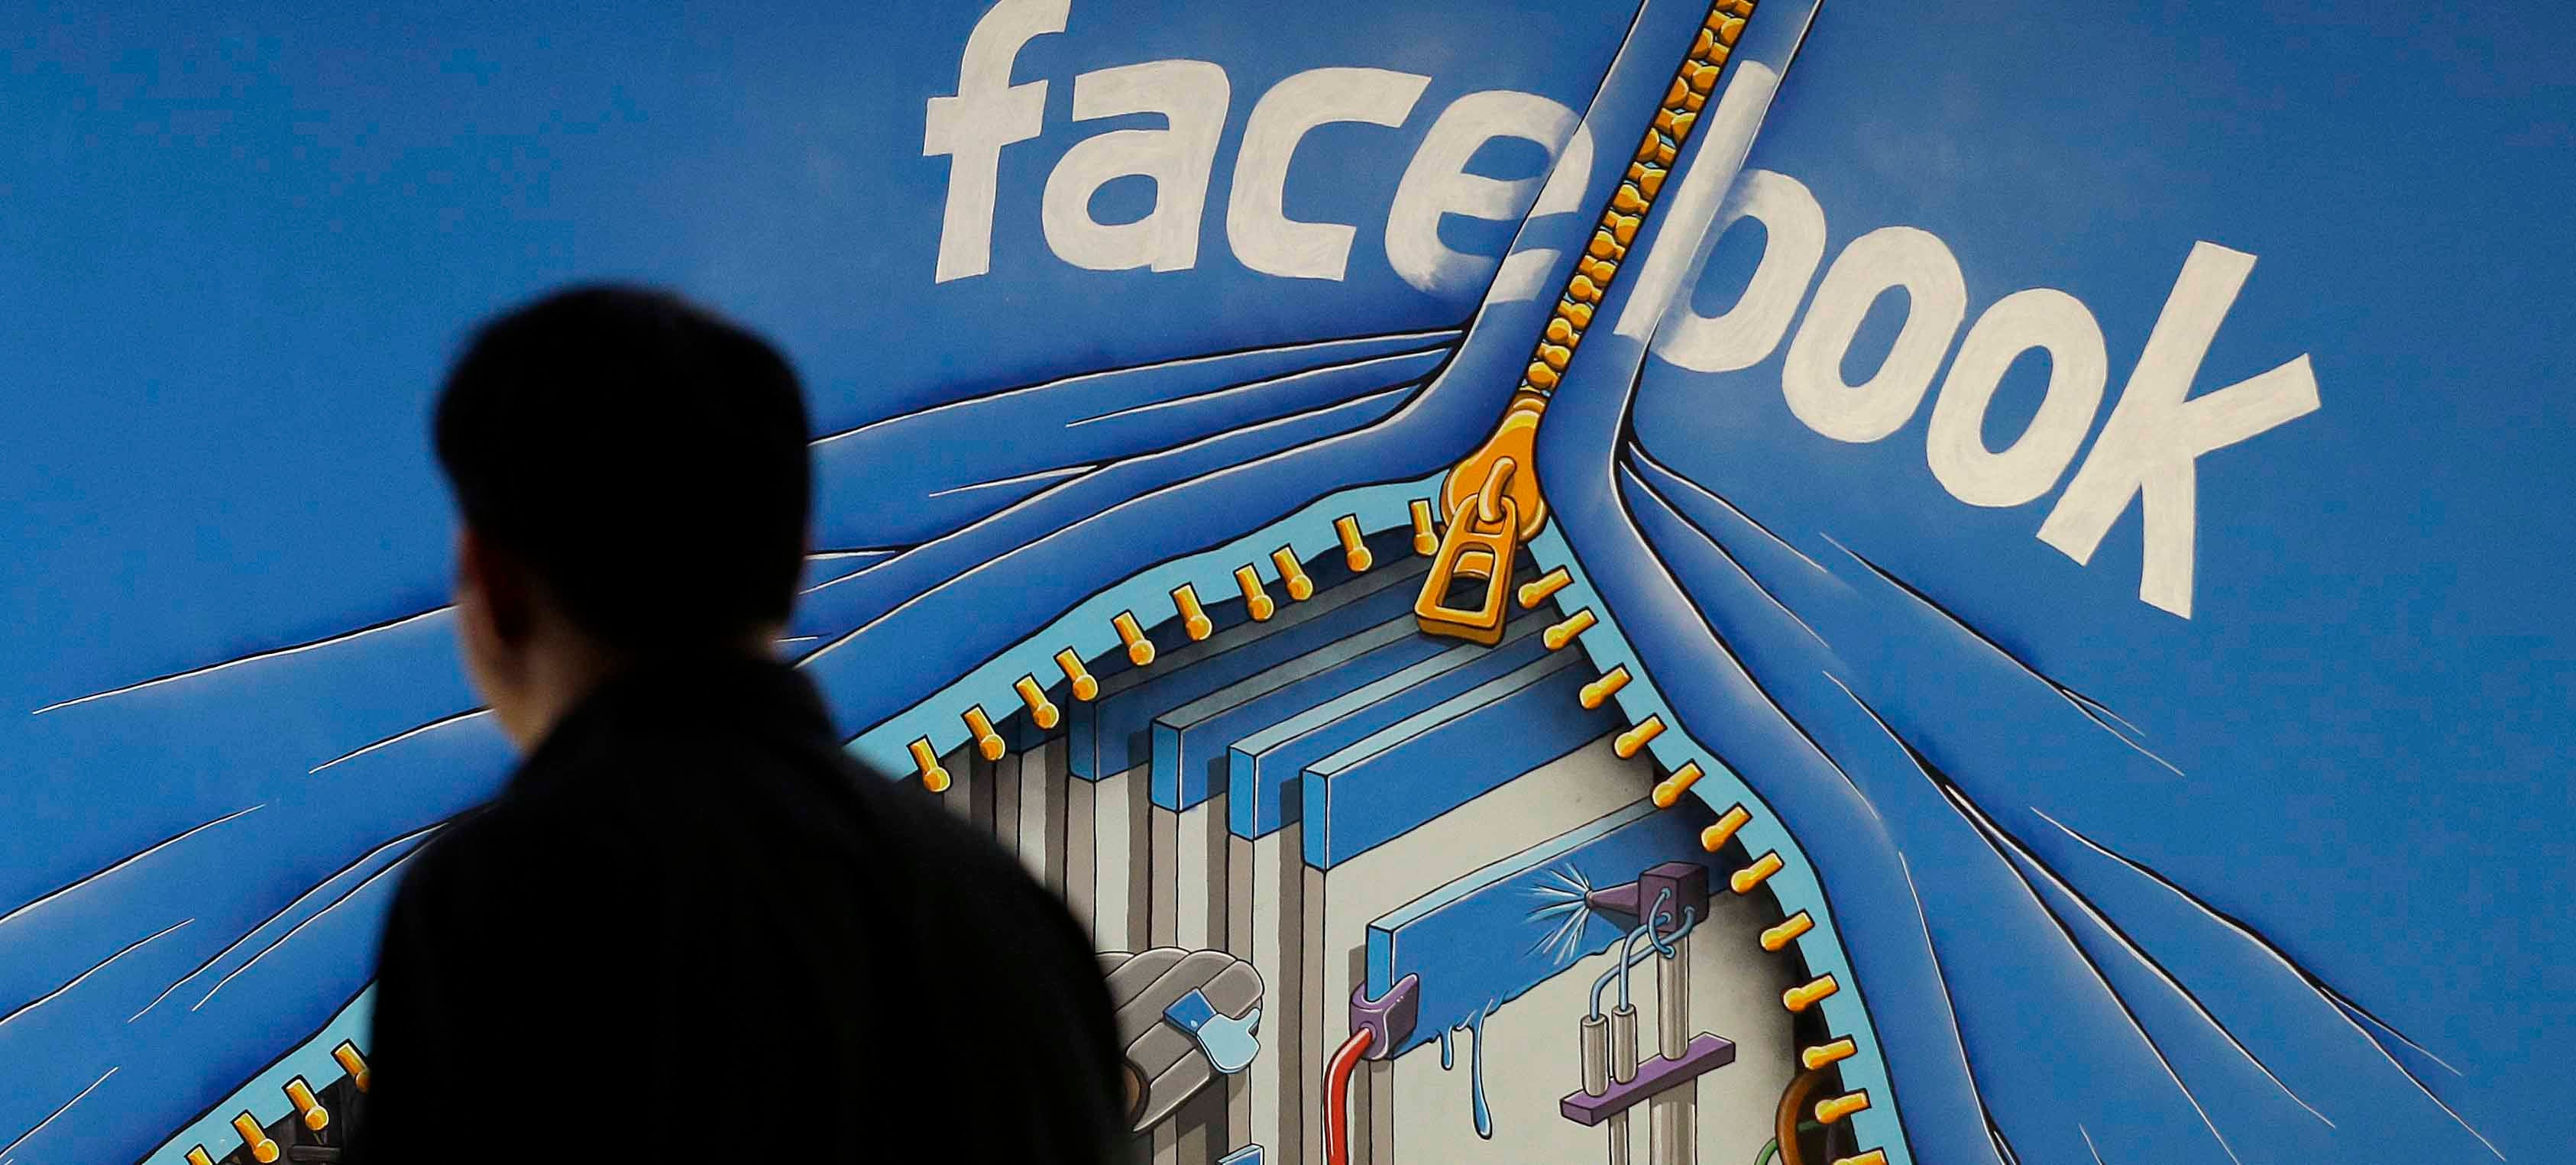 Facebook Will Now Track You And Force Feed You Ads Even If You Don't Use It